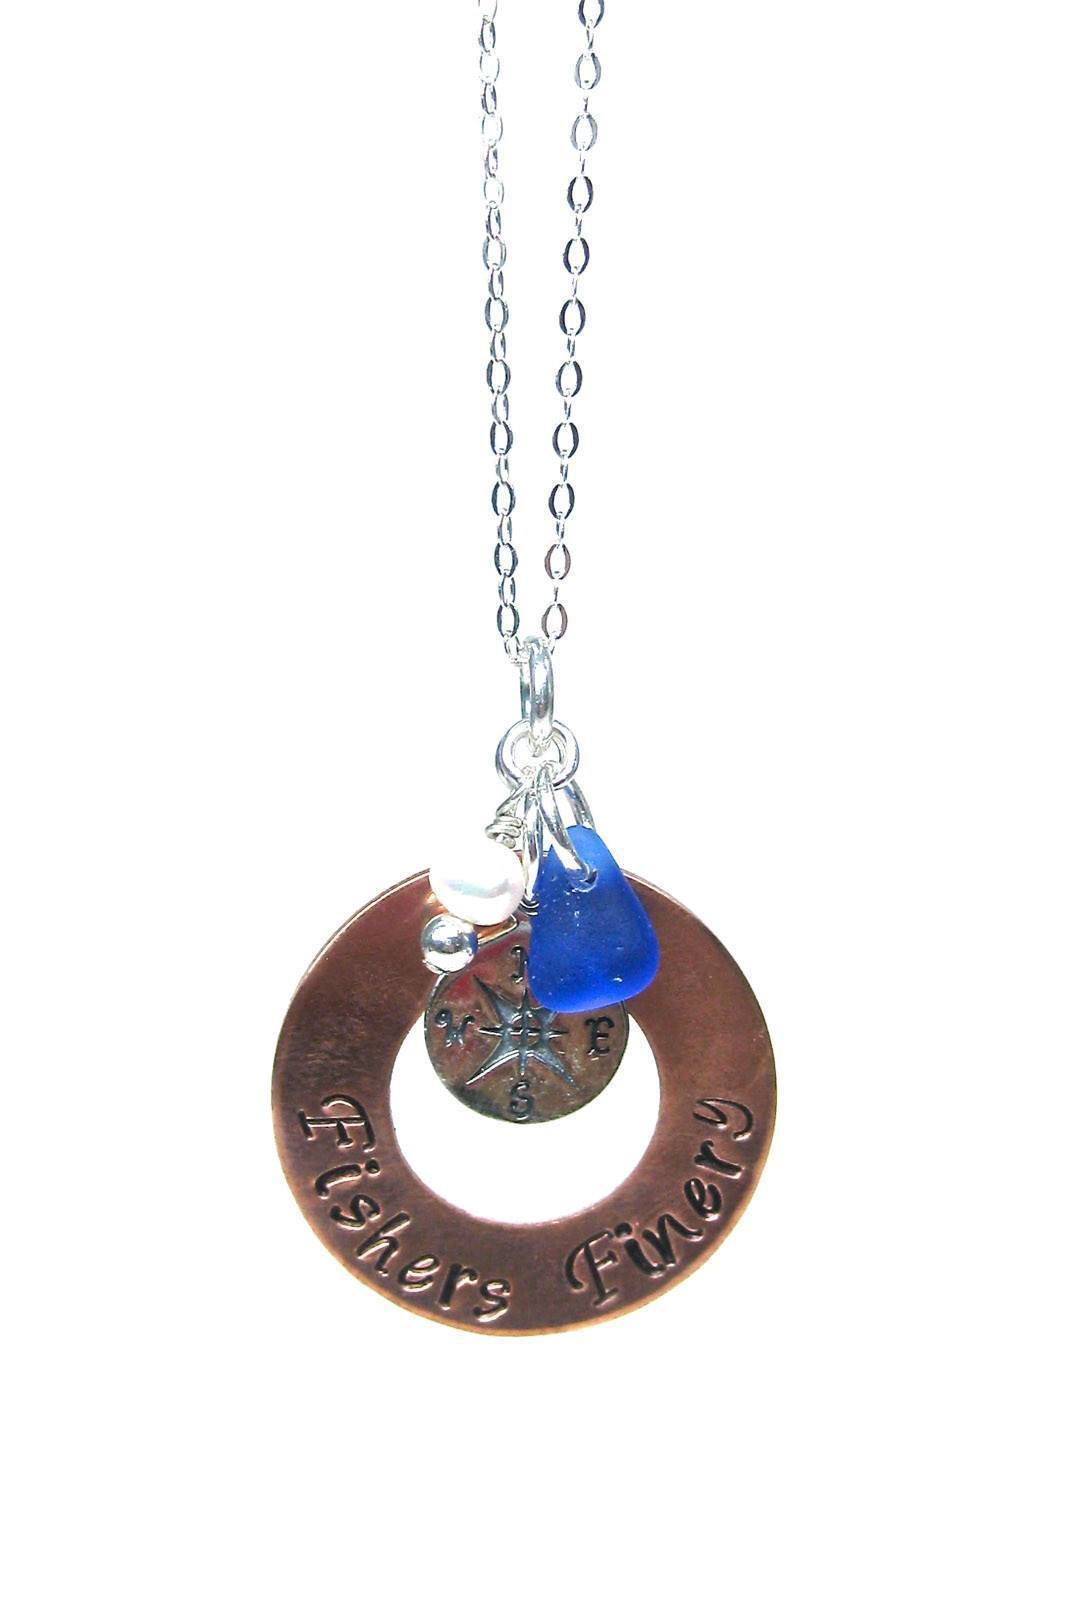 Compass Charm Necklace with Gift Box - Fishers Finery